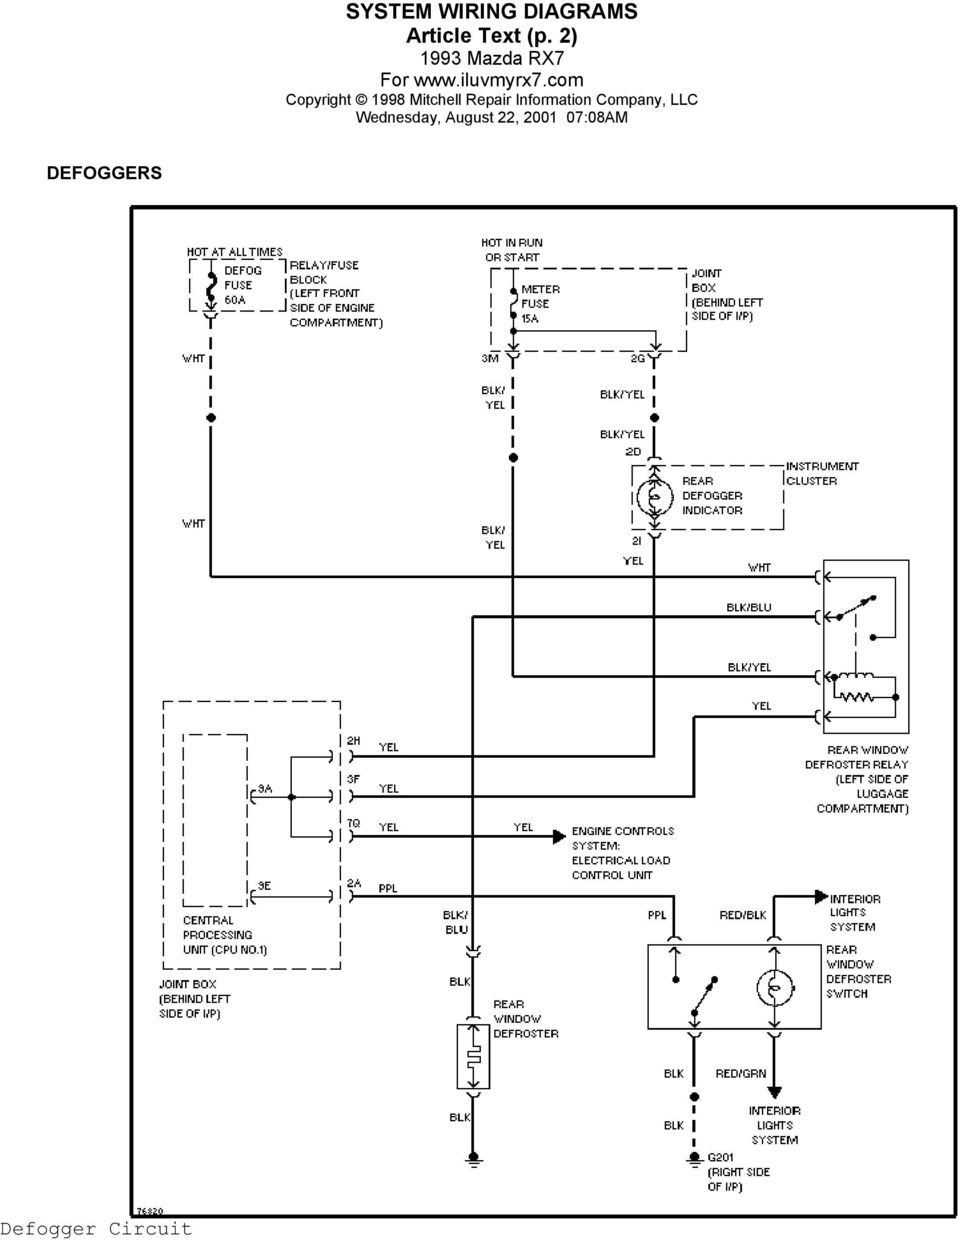 medium resolution of 4 system wiring diagrams article text p 3 horn horn circuit power antenna